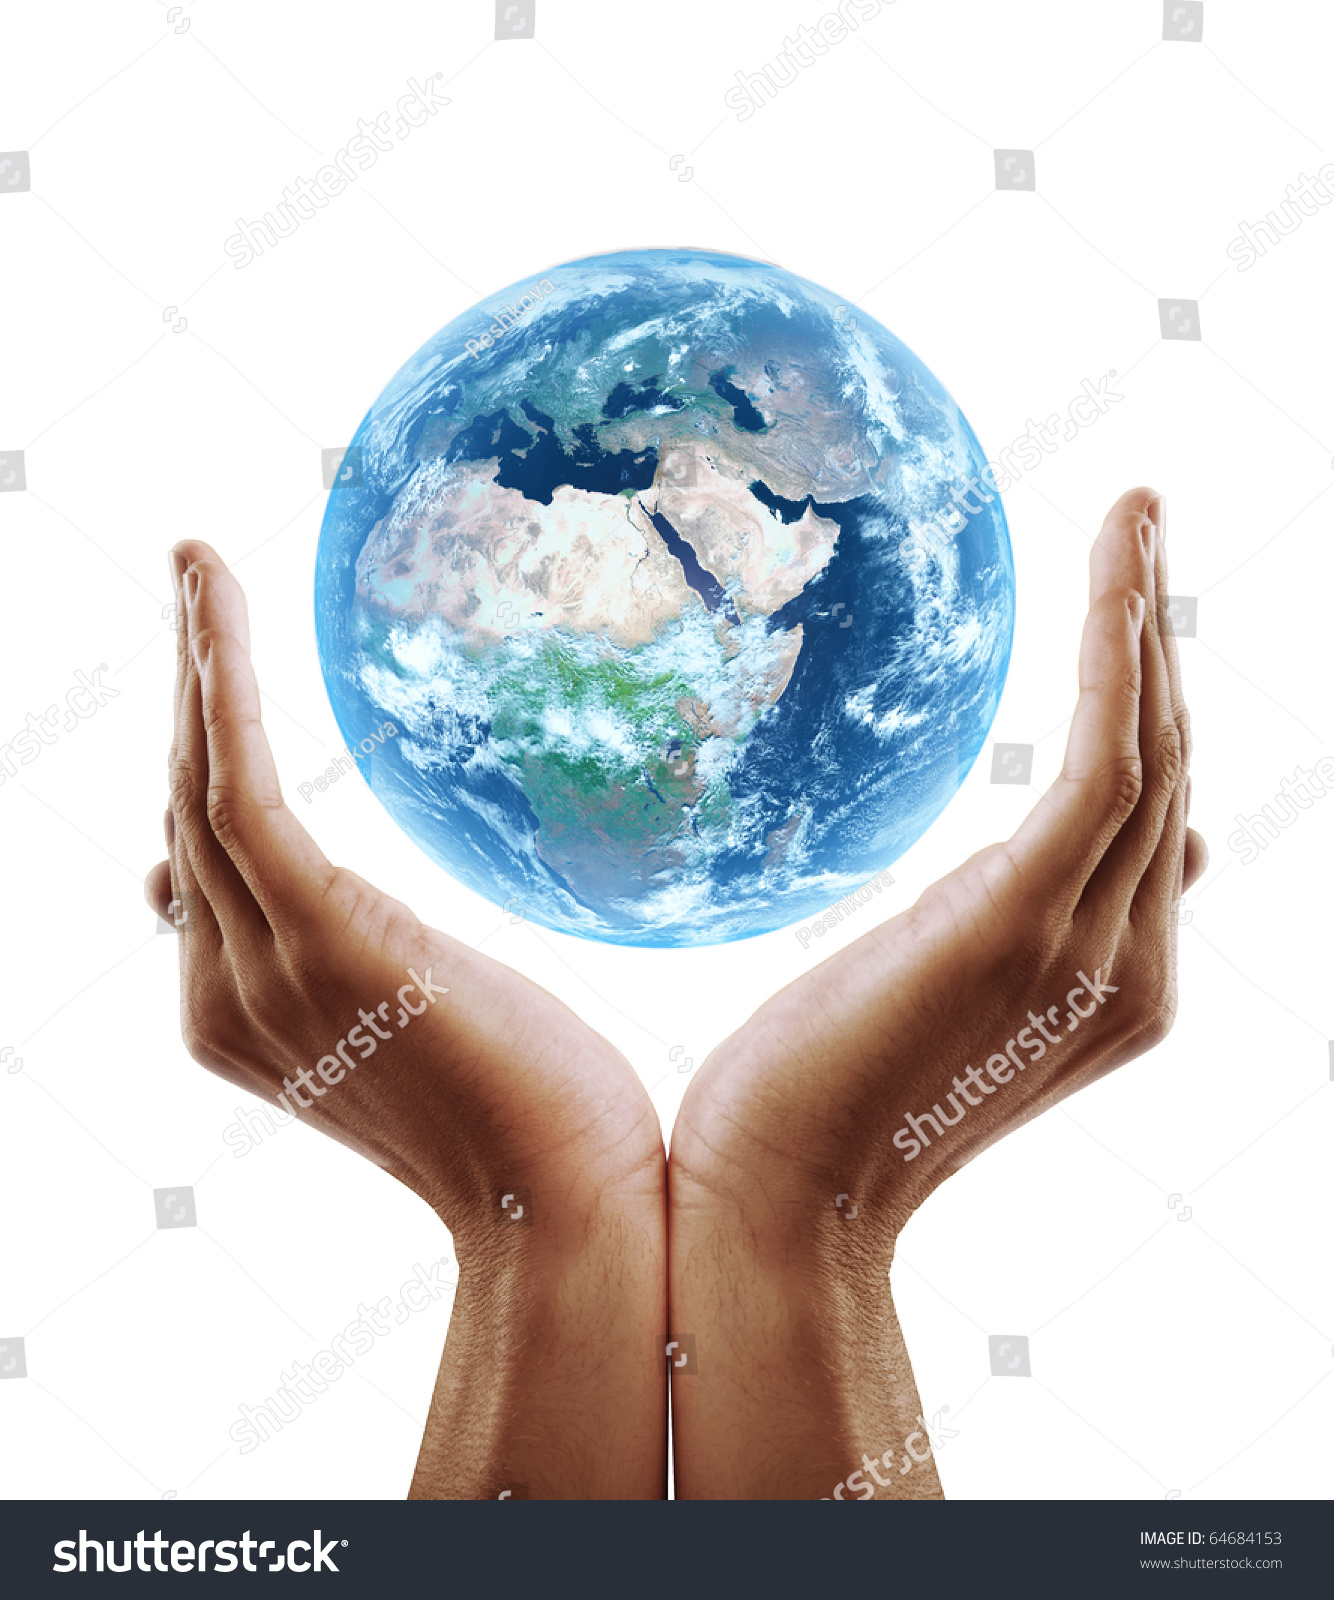 hand holding earth stock photo safe to use 64684153 shutterstock rh shutterstock com hand holding earth drawing hand holding heart meaning